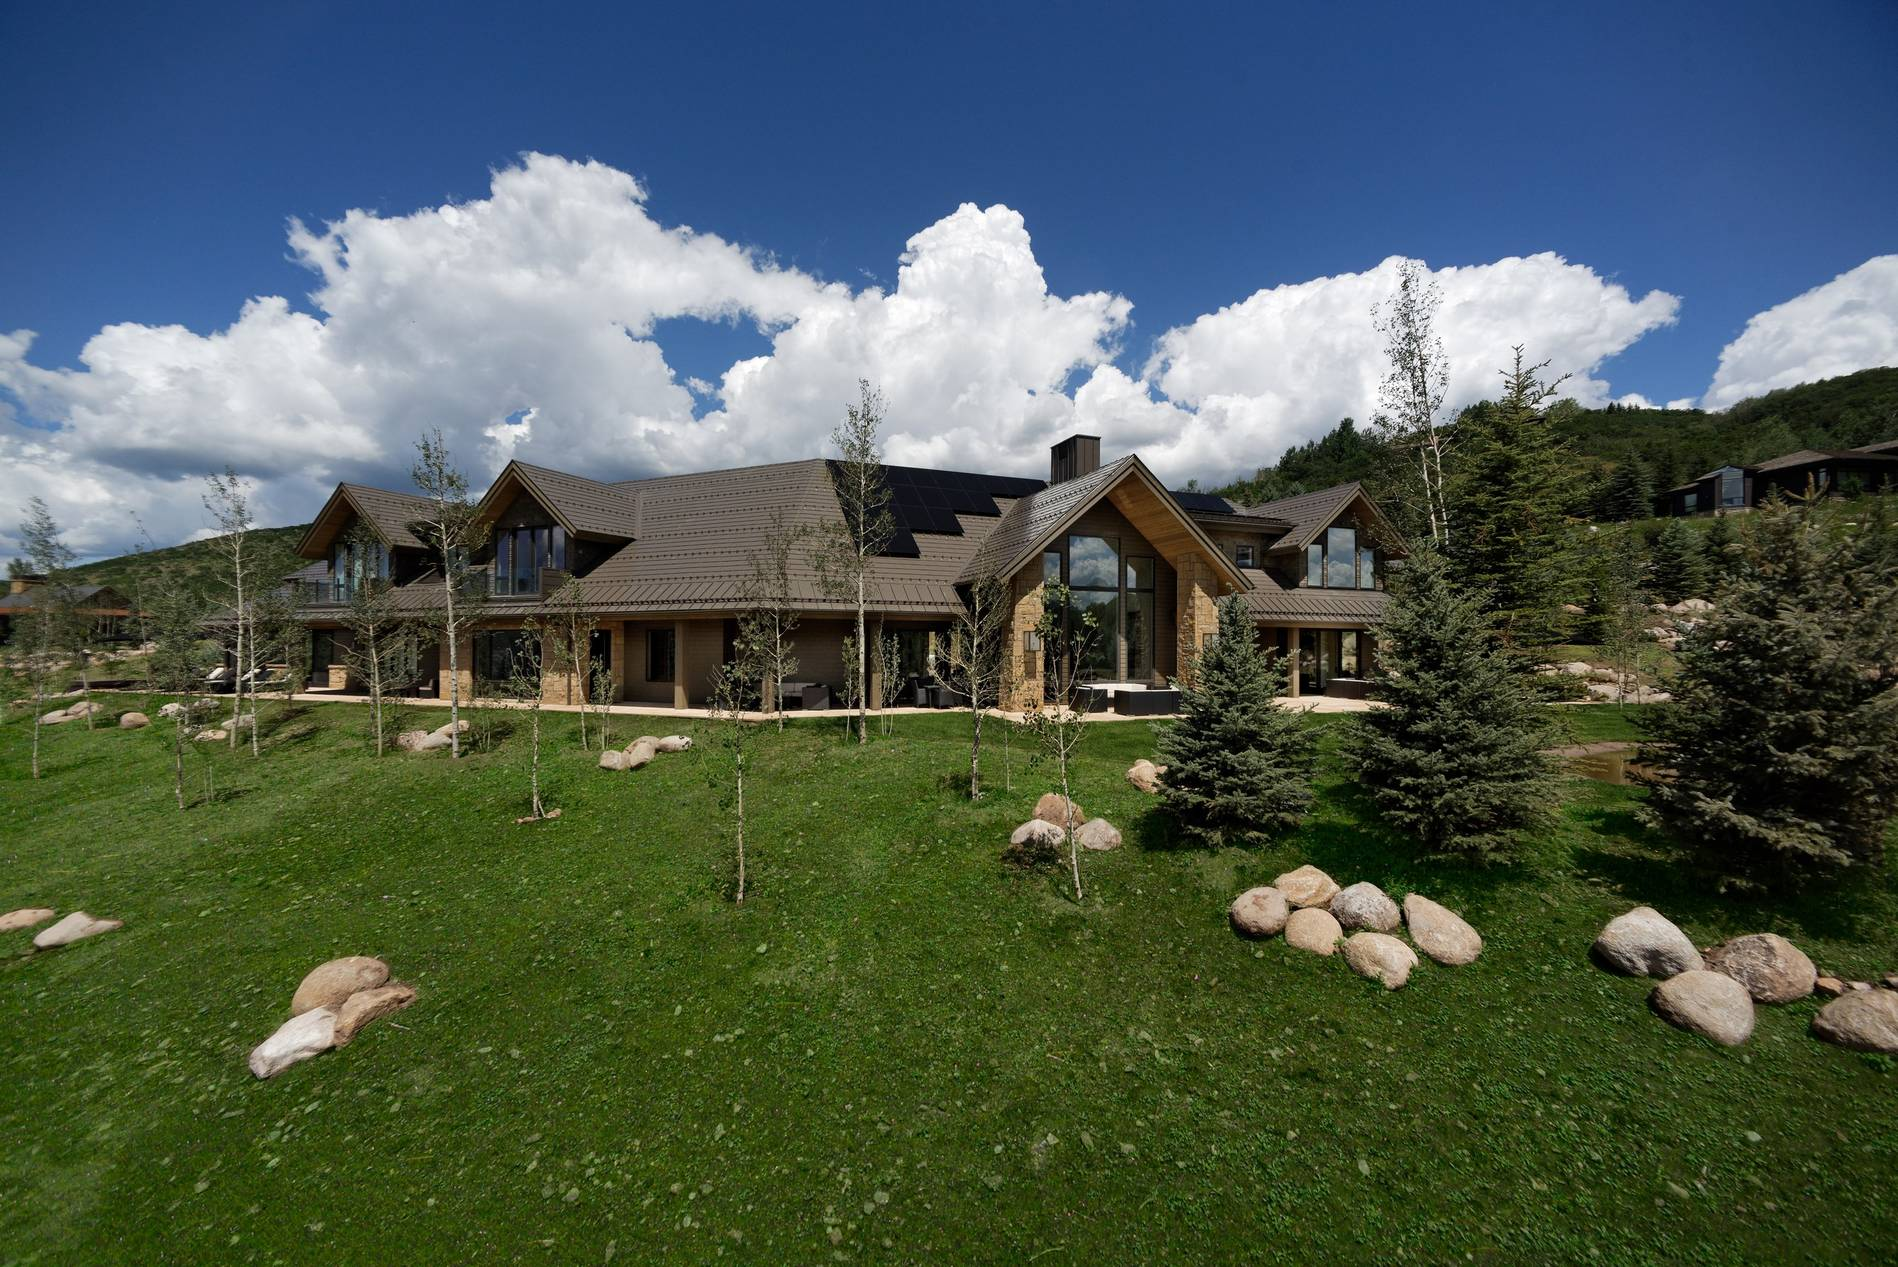 61 Sunnyside Way Aspen Photo 8